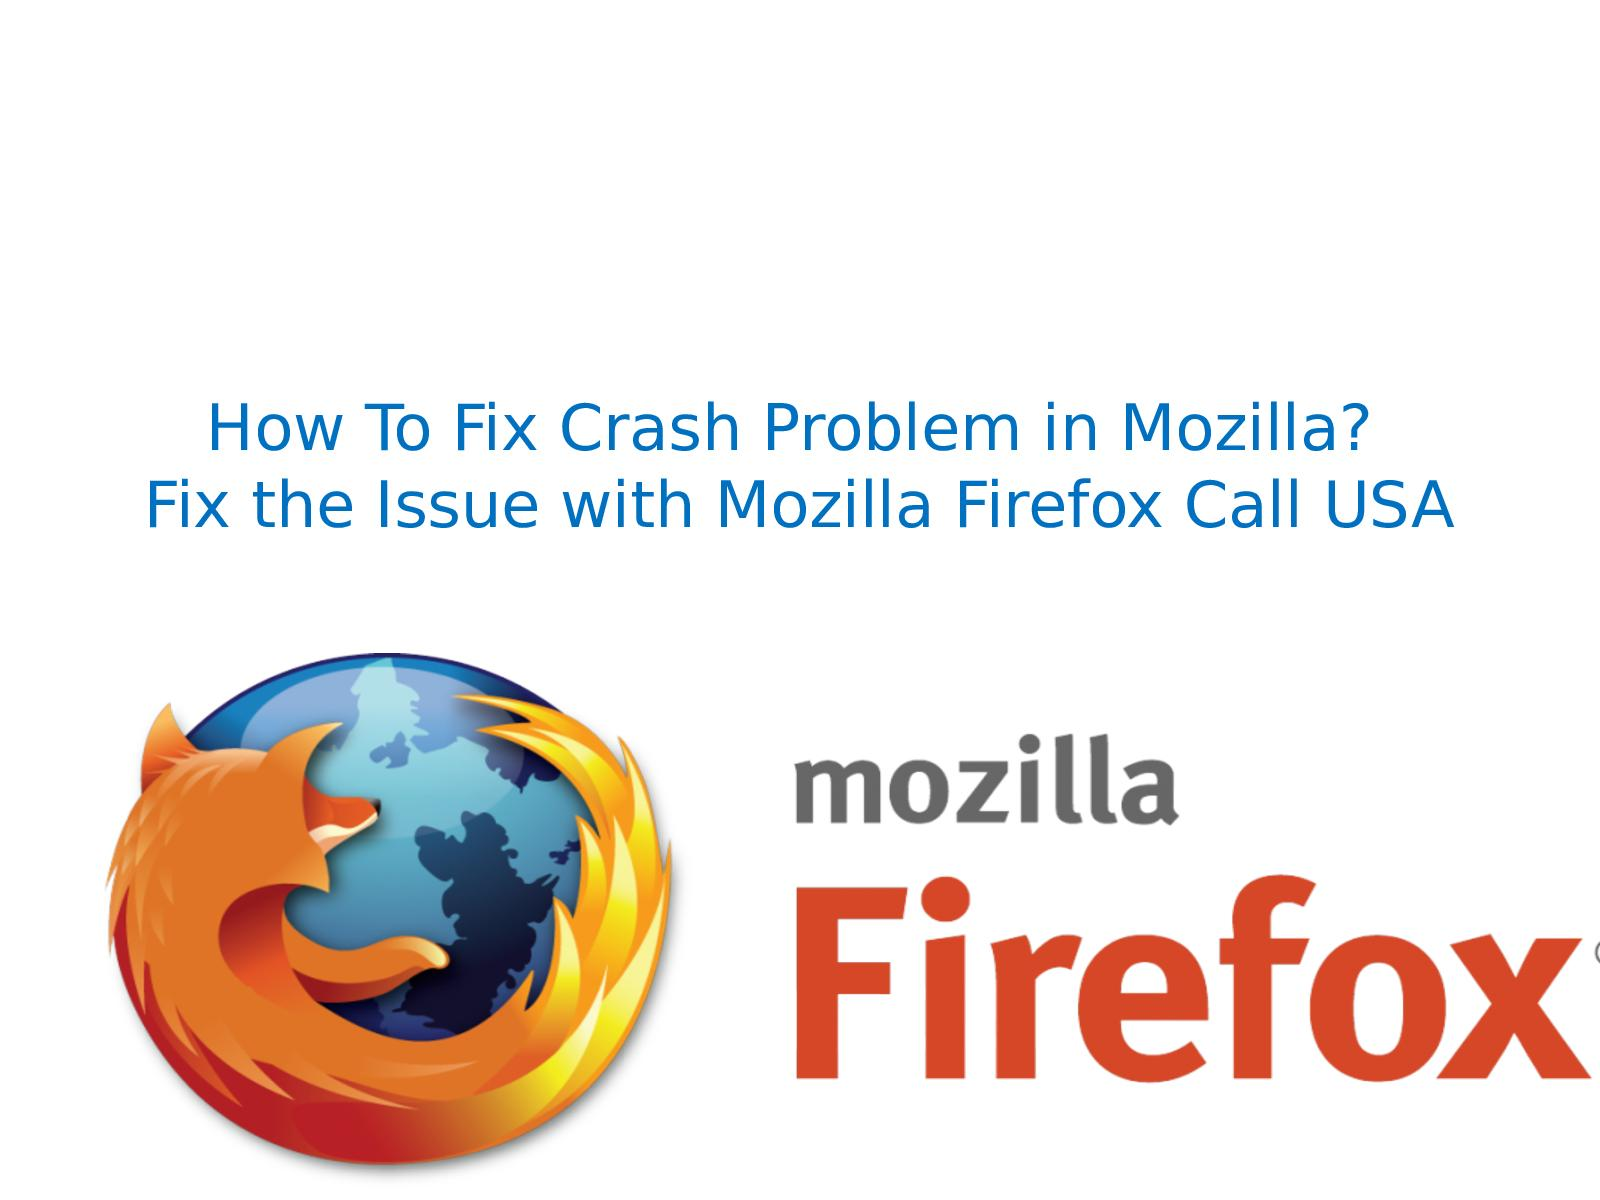 Calaméo - How To Fix Crash Problem In Mozilla Firefox browser?